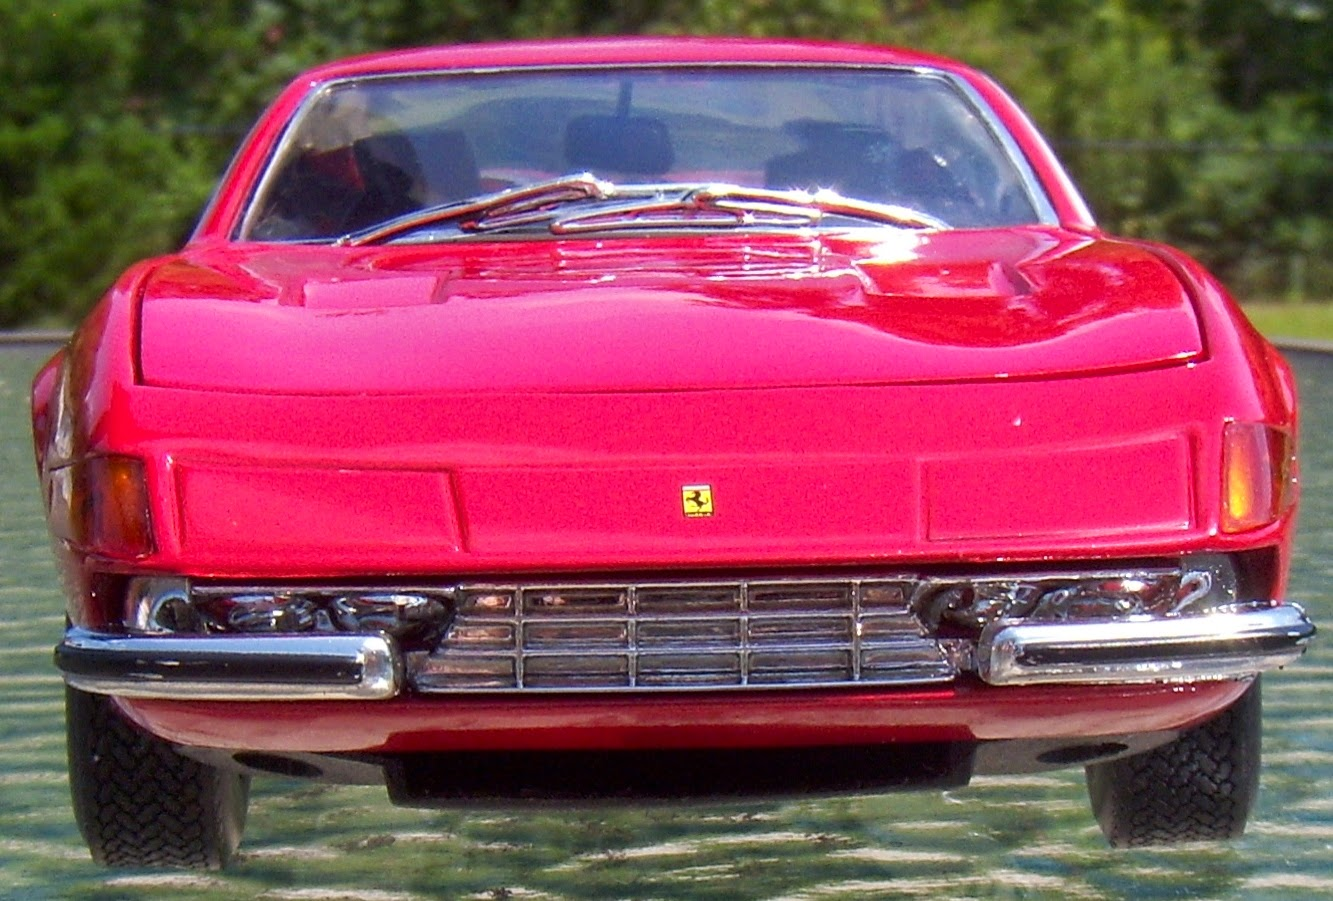 hot wheels 1 18 ferrari elite line and maybe ferrari in its entirely for mattel since they plan not to renew the copyright contract license for 2015